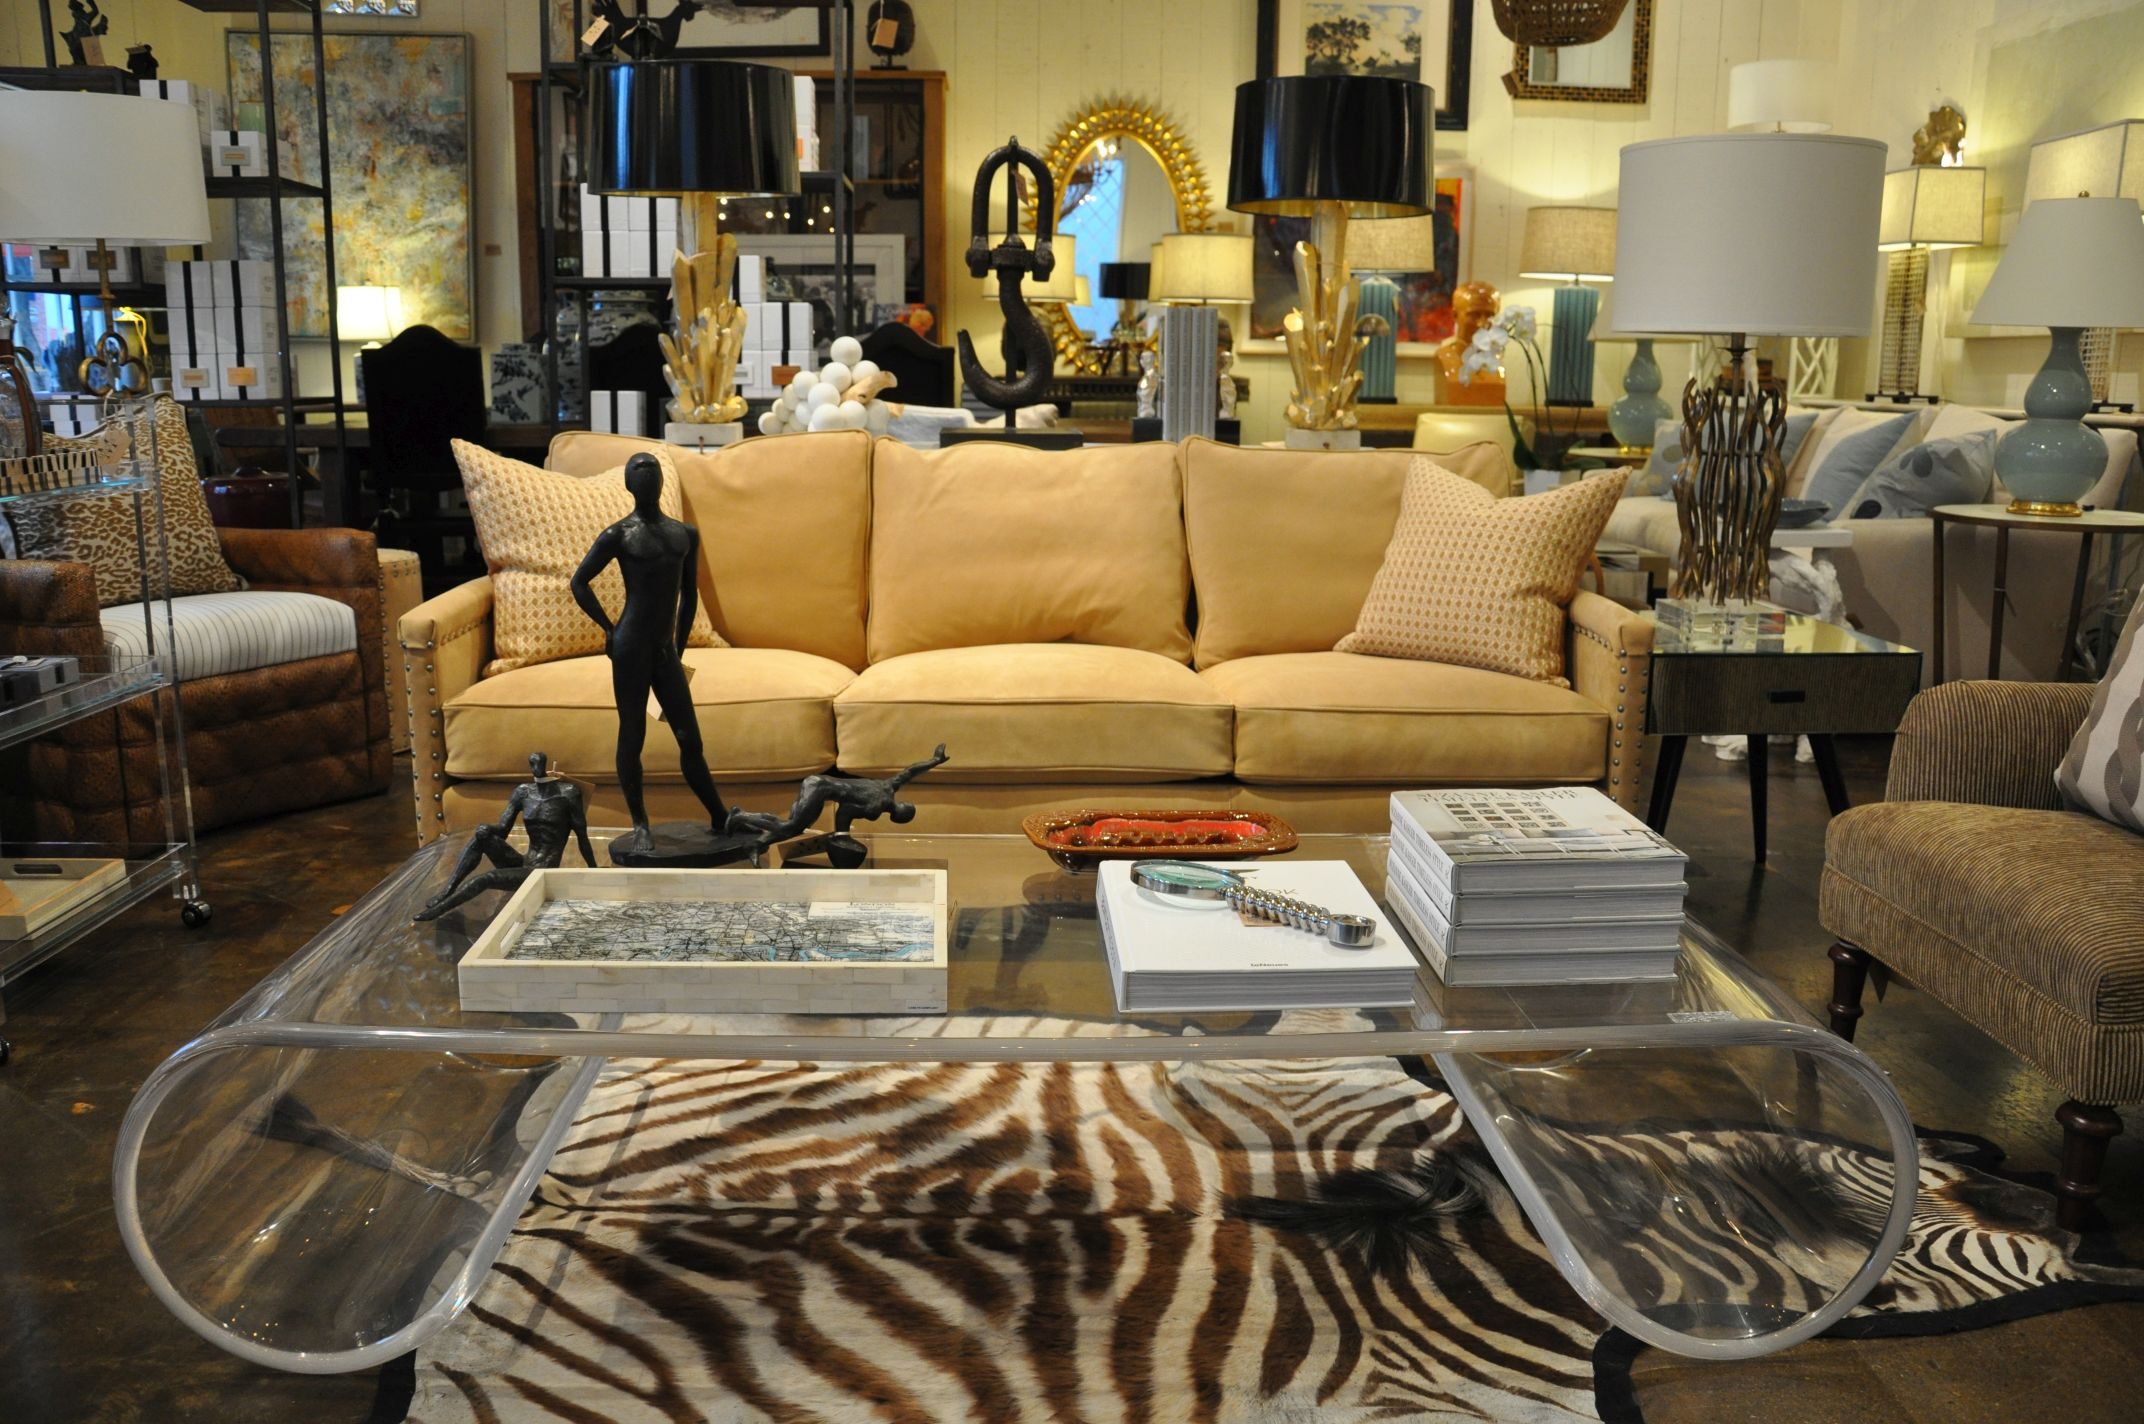 furniture unique living room design with lucite coffee table zebra rugs and beige loveseat decorative cushions plus ikea side lamp gray accent chair inexpensive sofa tables patio